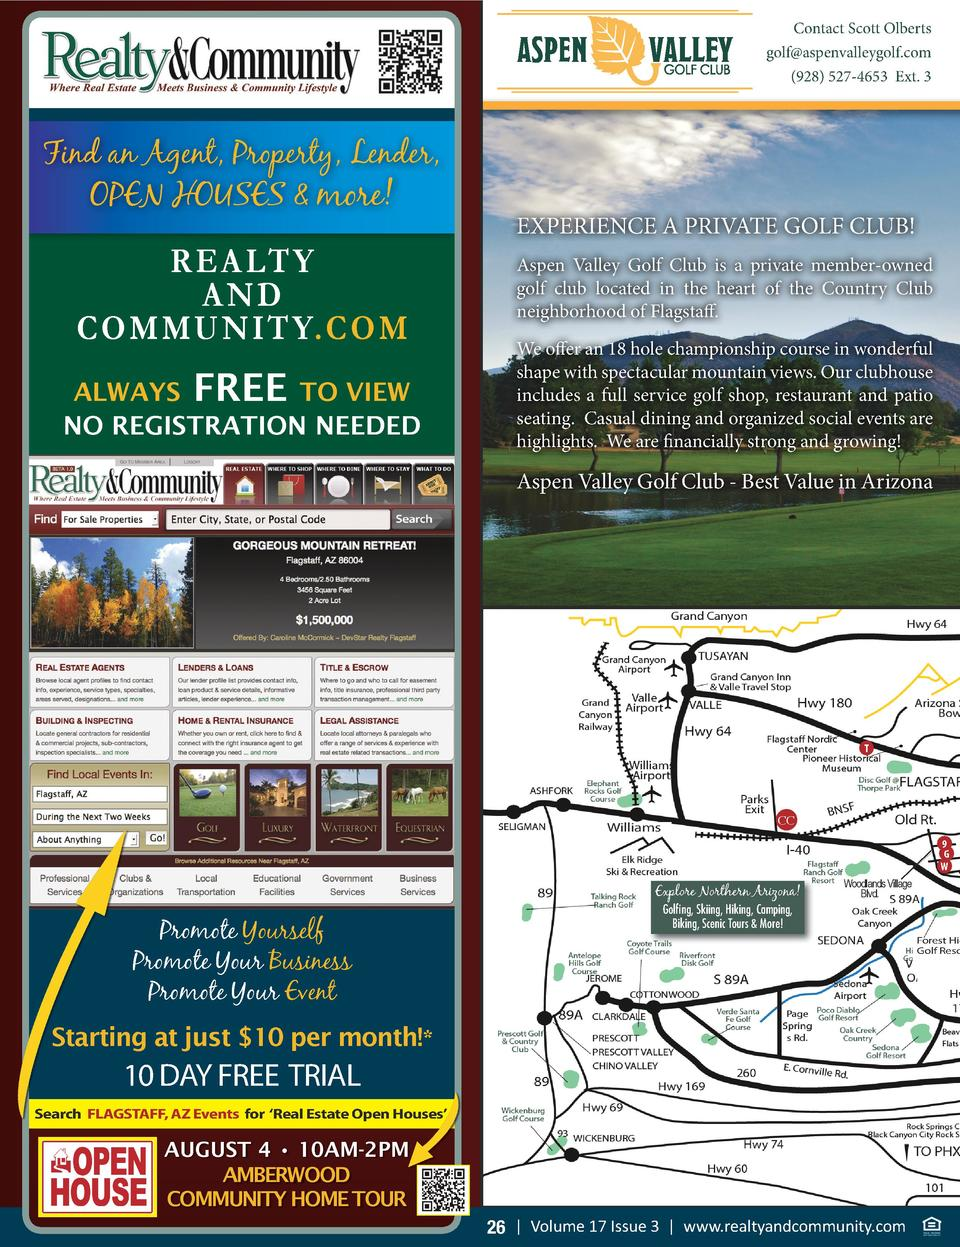 Contact Scott Olberts golf aspenvalleygolf.com  928  527-4653 Ext. 3  Find an Agent, Property, Lender, OPEN HOUSES   more ...